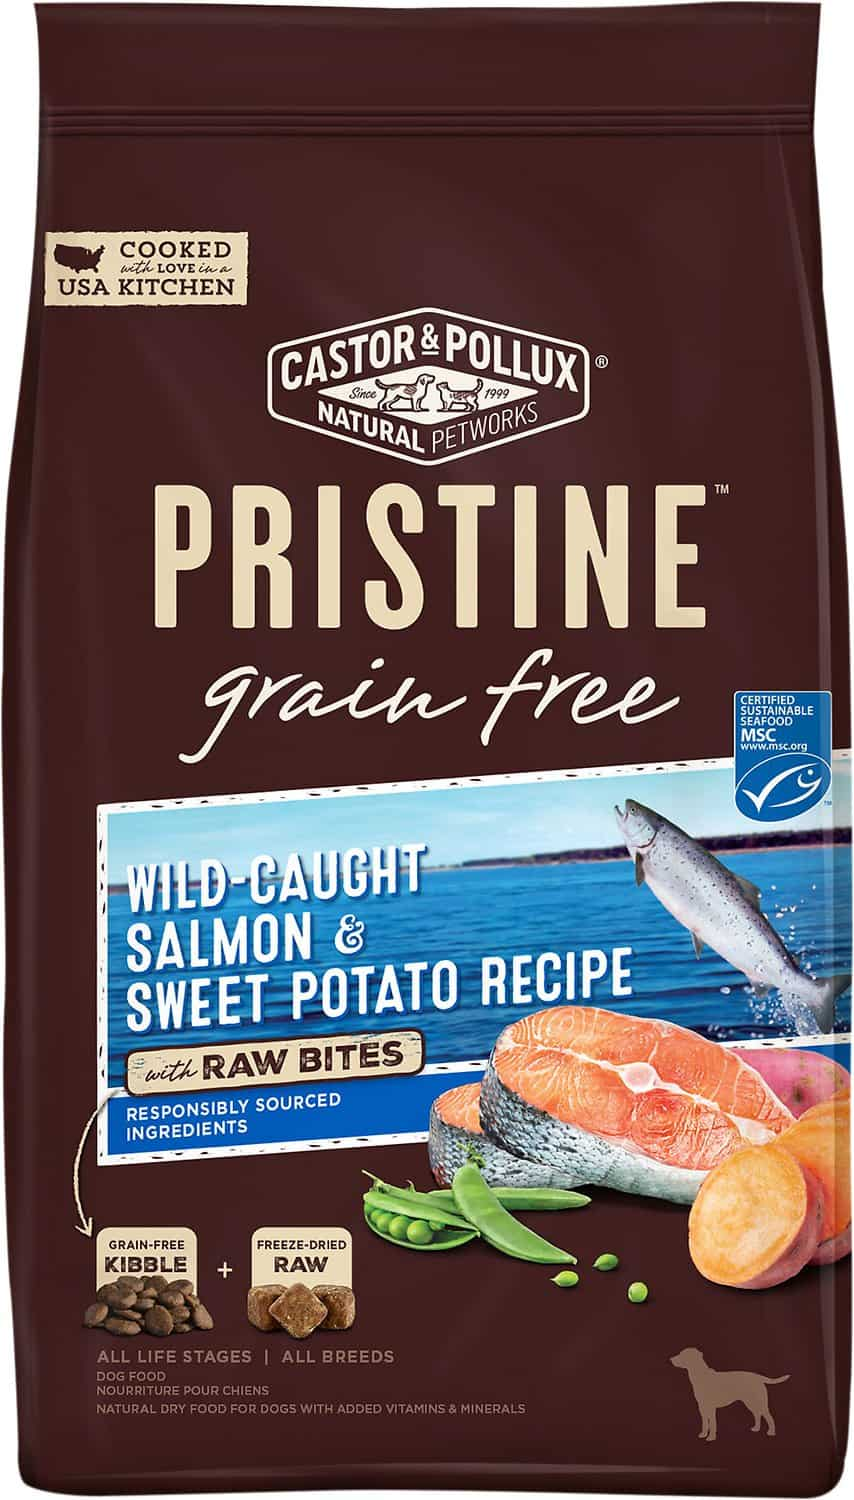 Castor and Pollux Dog Food: 2020 Review, Recalls & Coupons 16